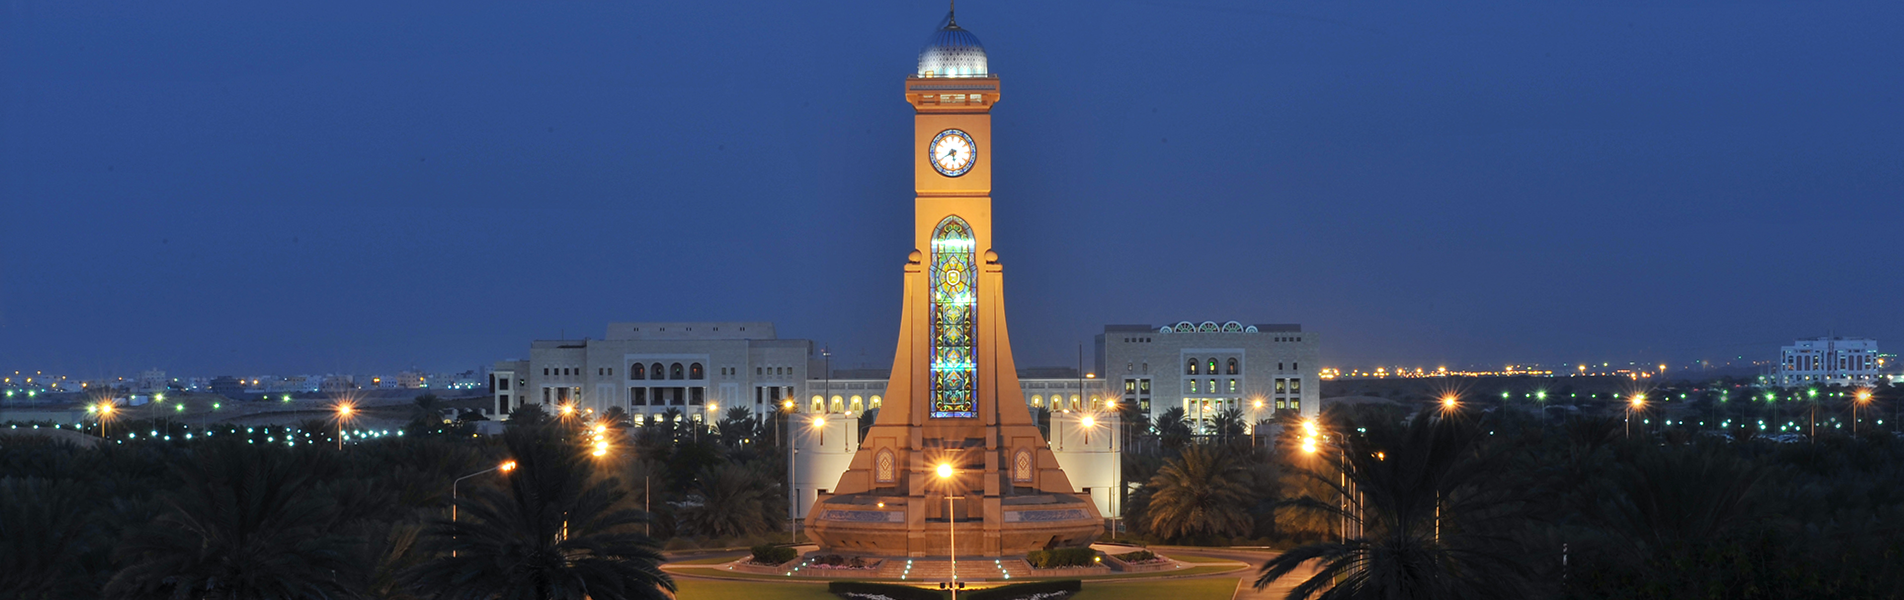 SQU Clock Tower